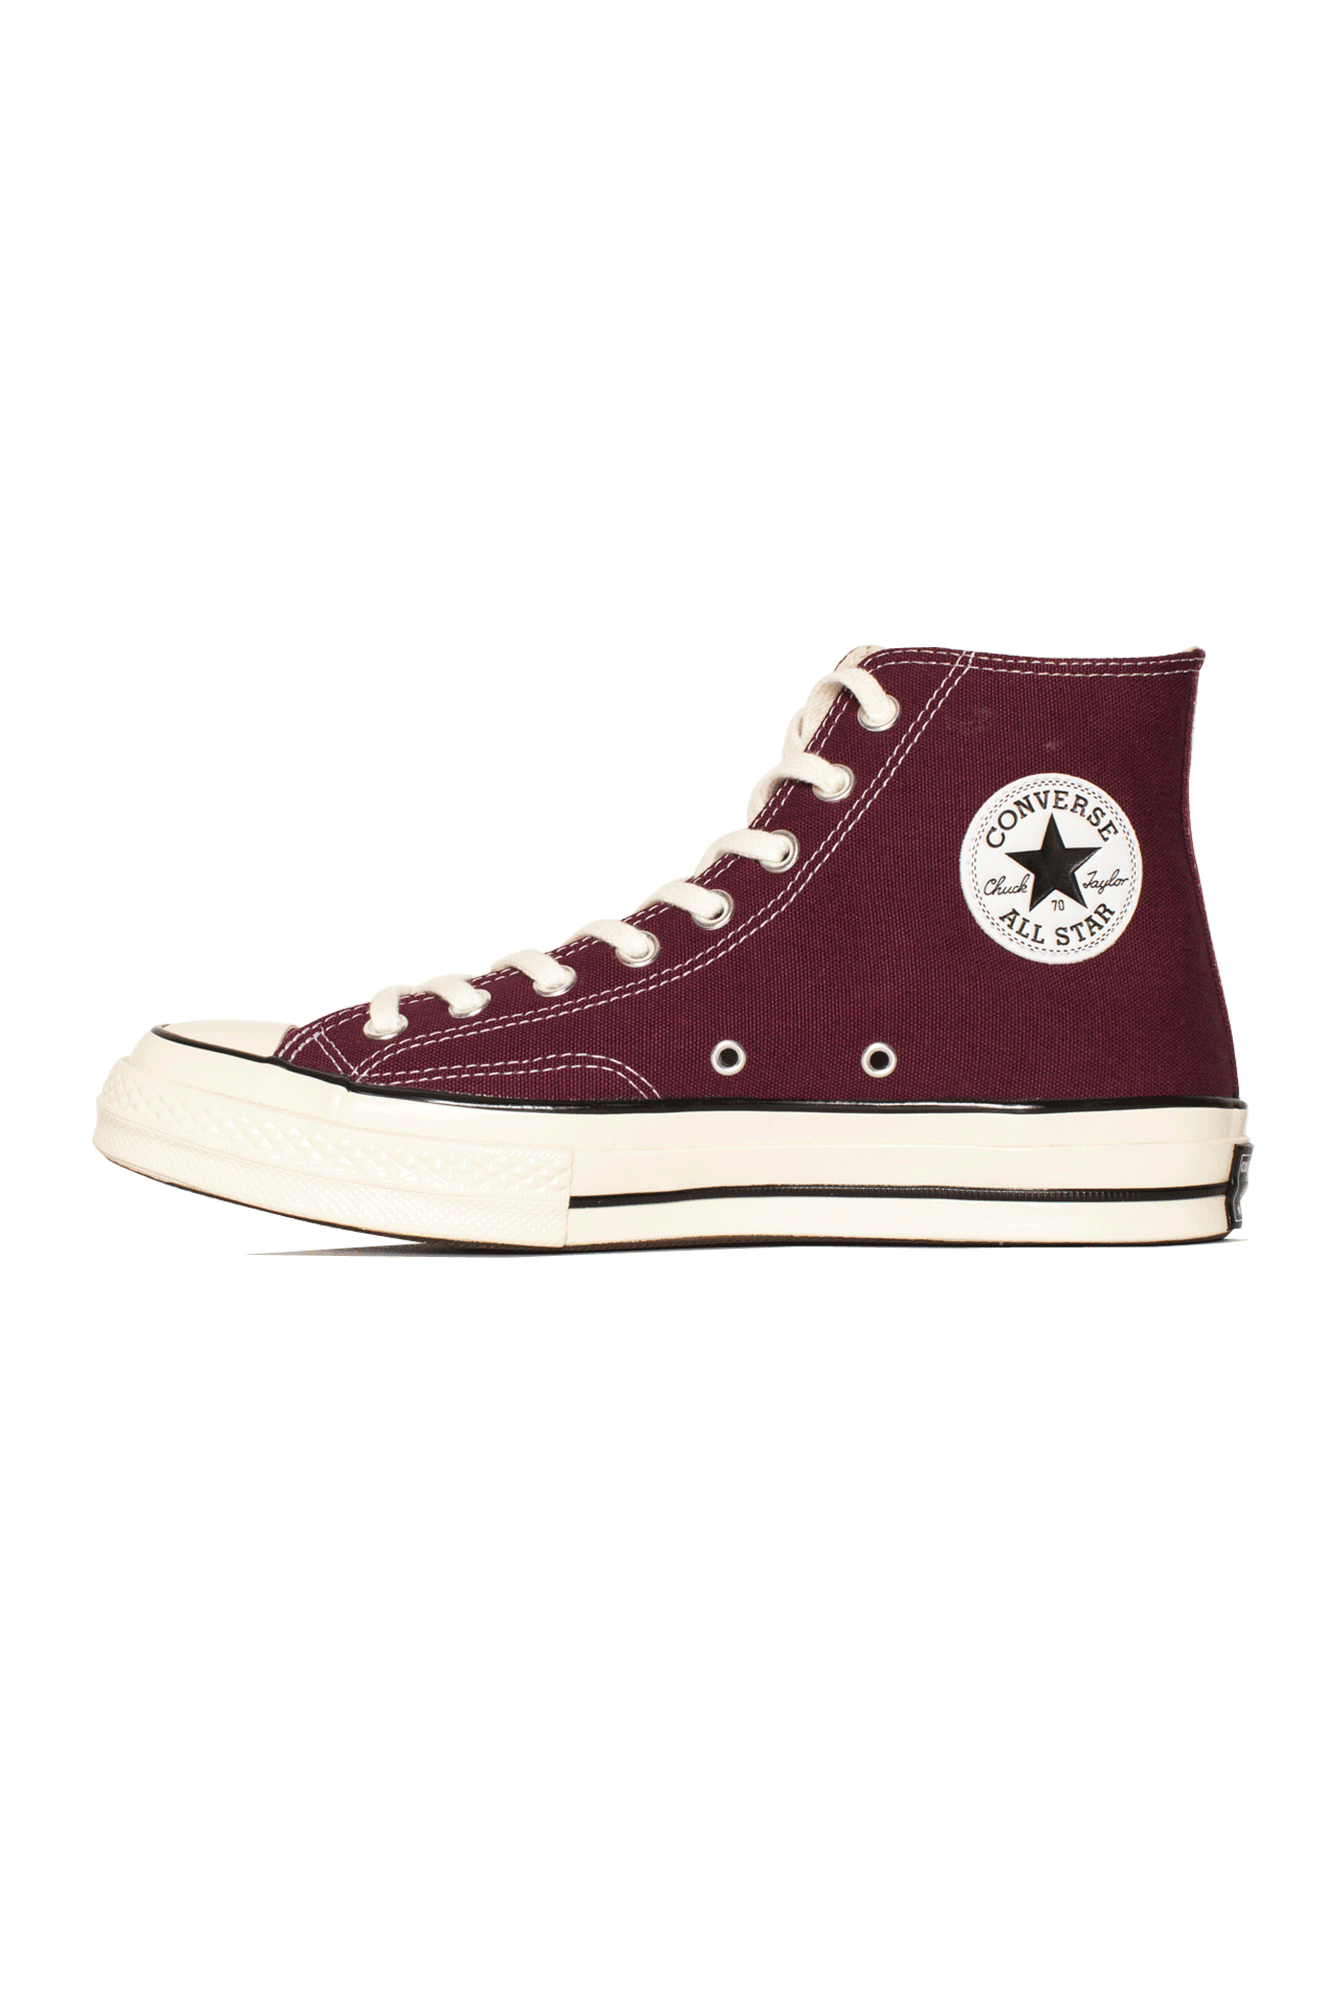 Converse Sneakers Chuck 70 Hi Rosso 162051C#000#C0012#6,5 - One Block Down